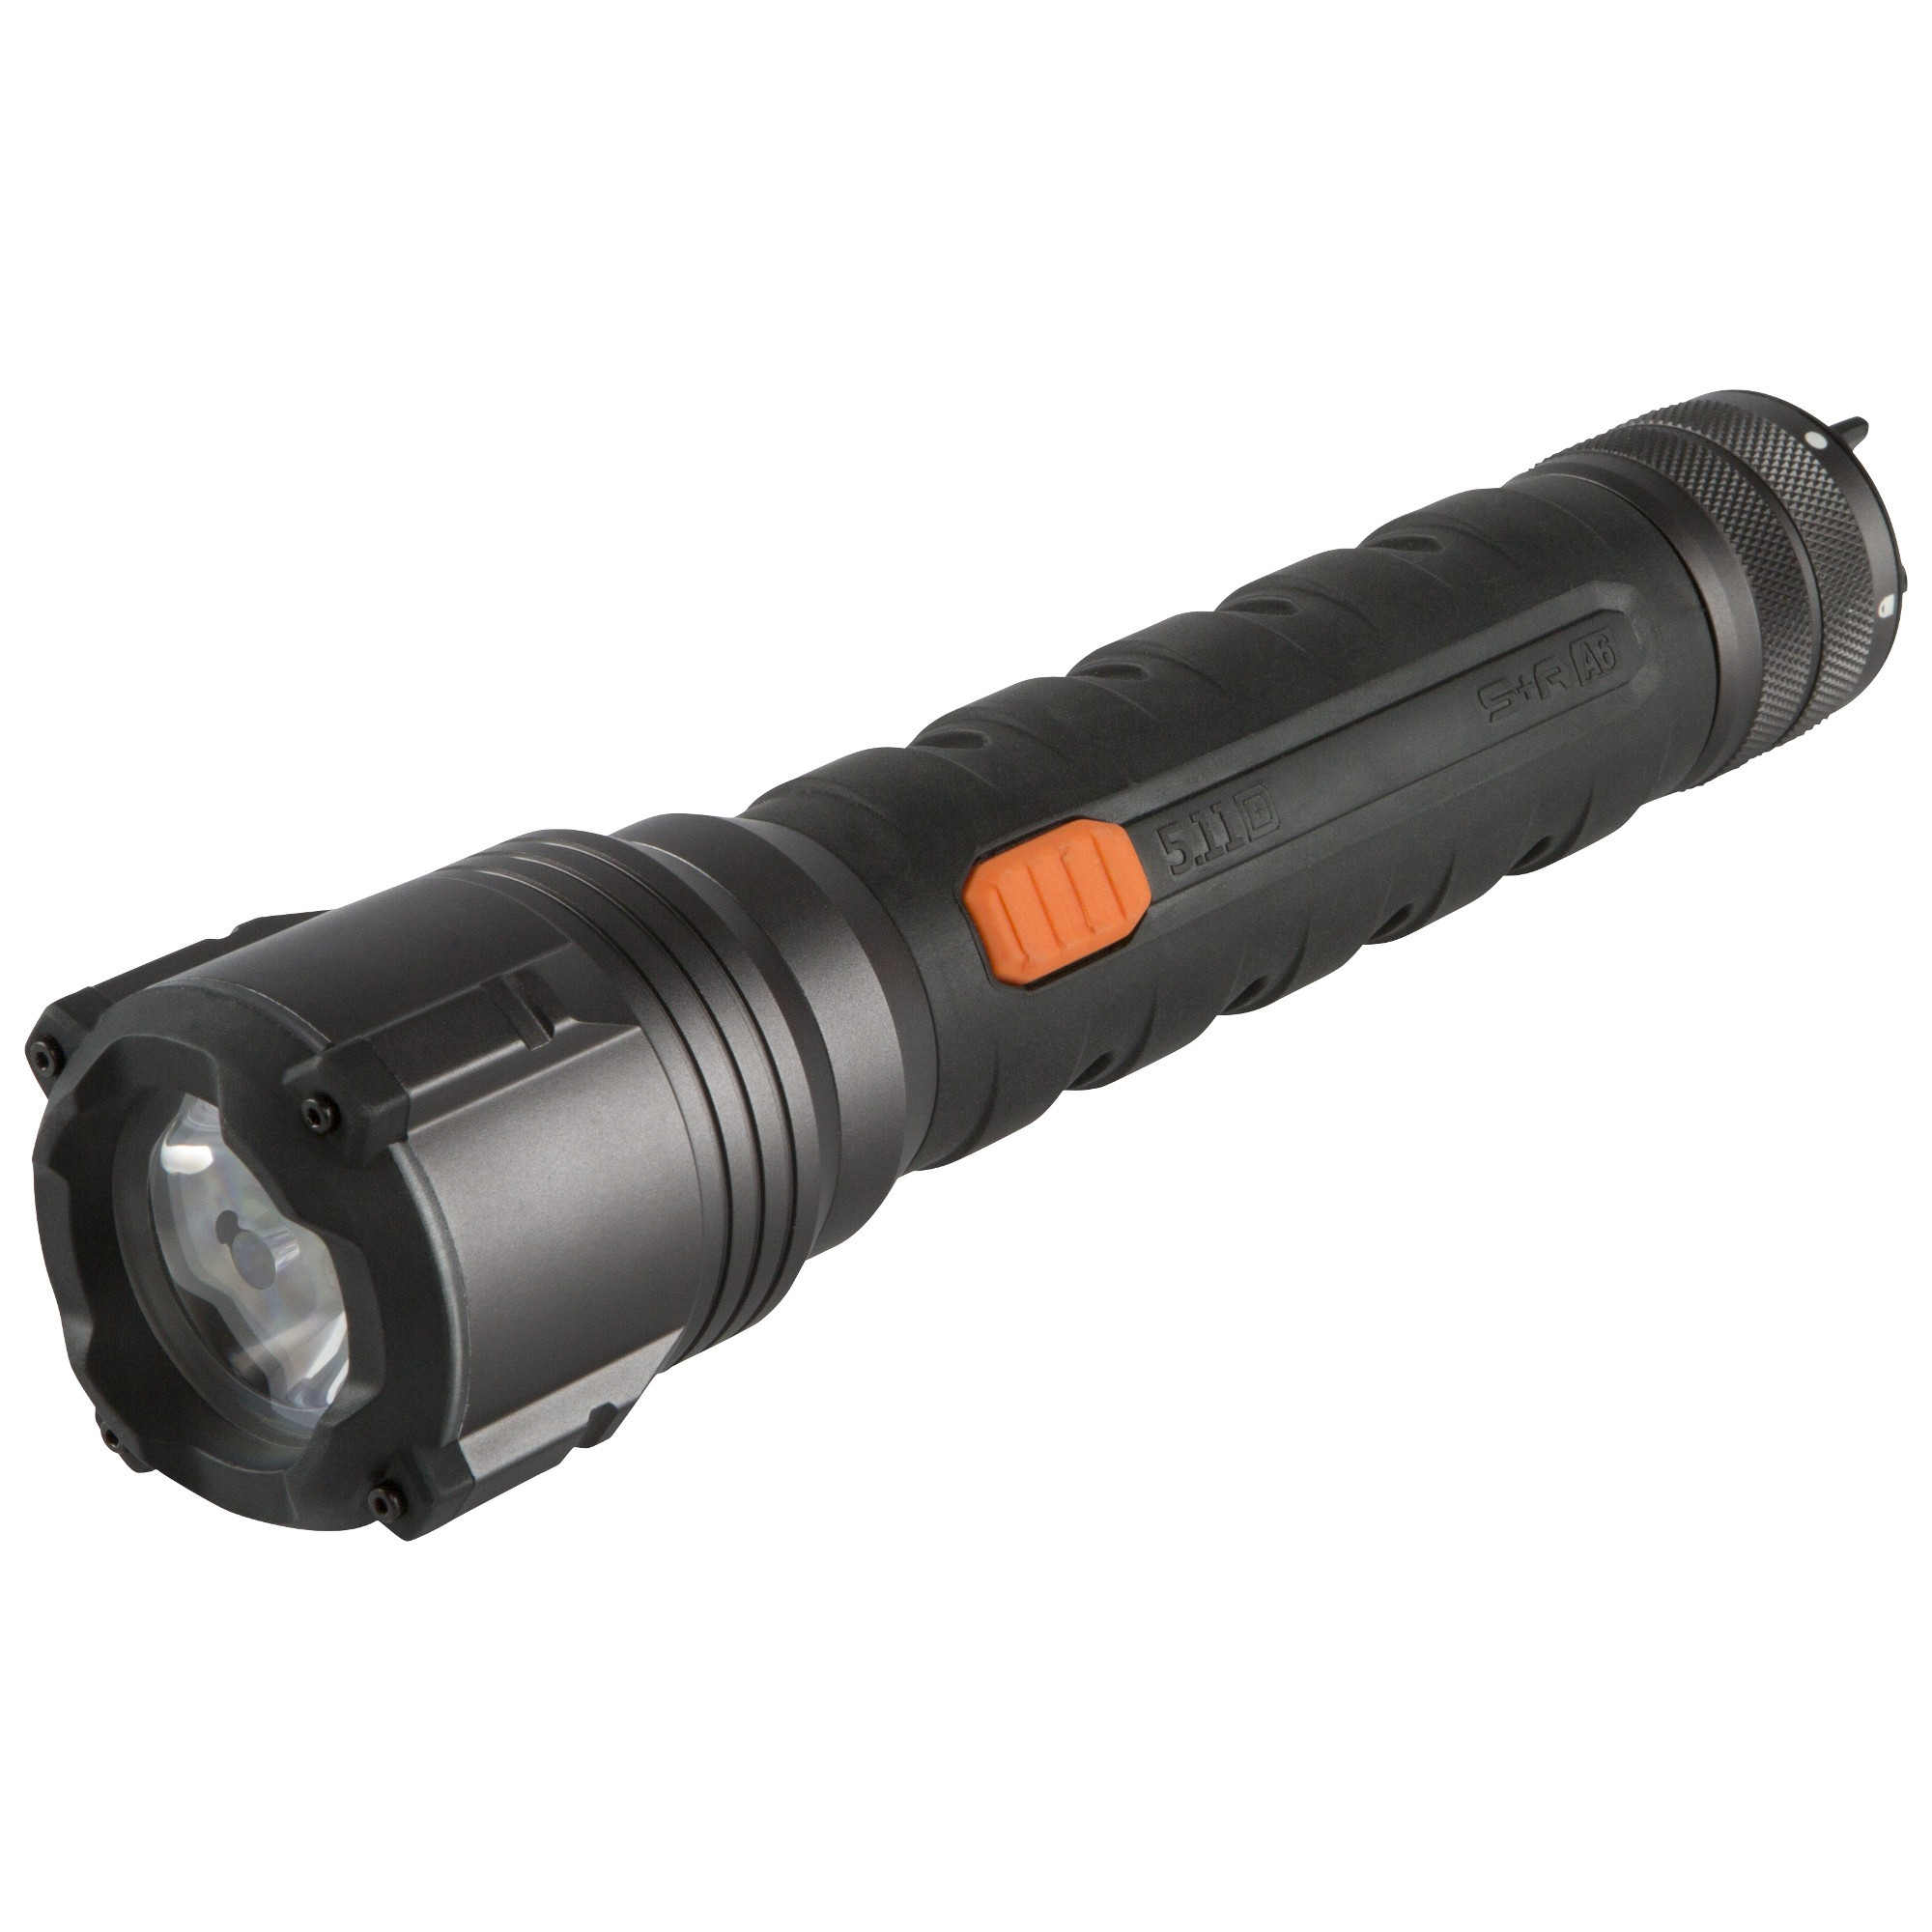 5.11 S&R A6 Flashlight 53193